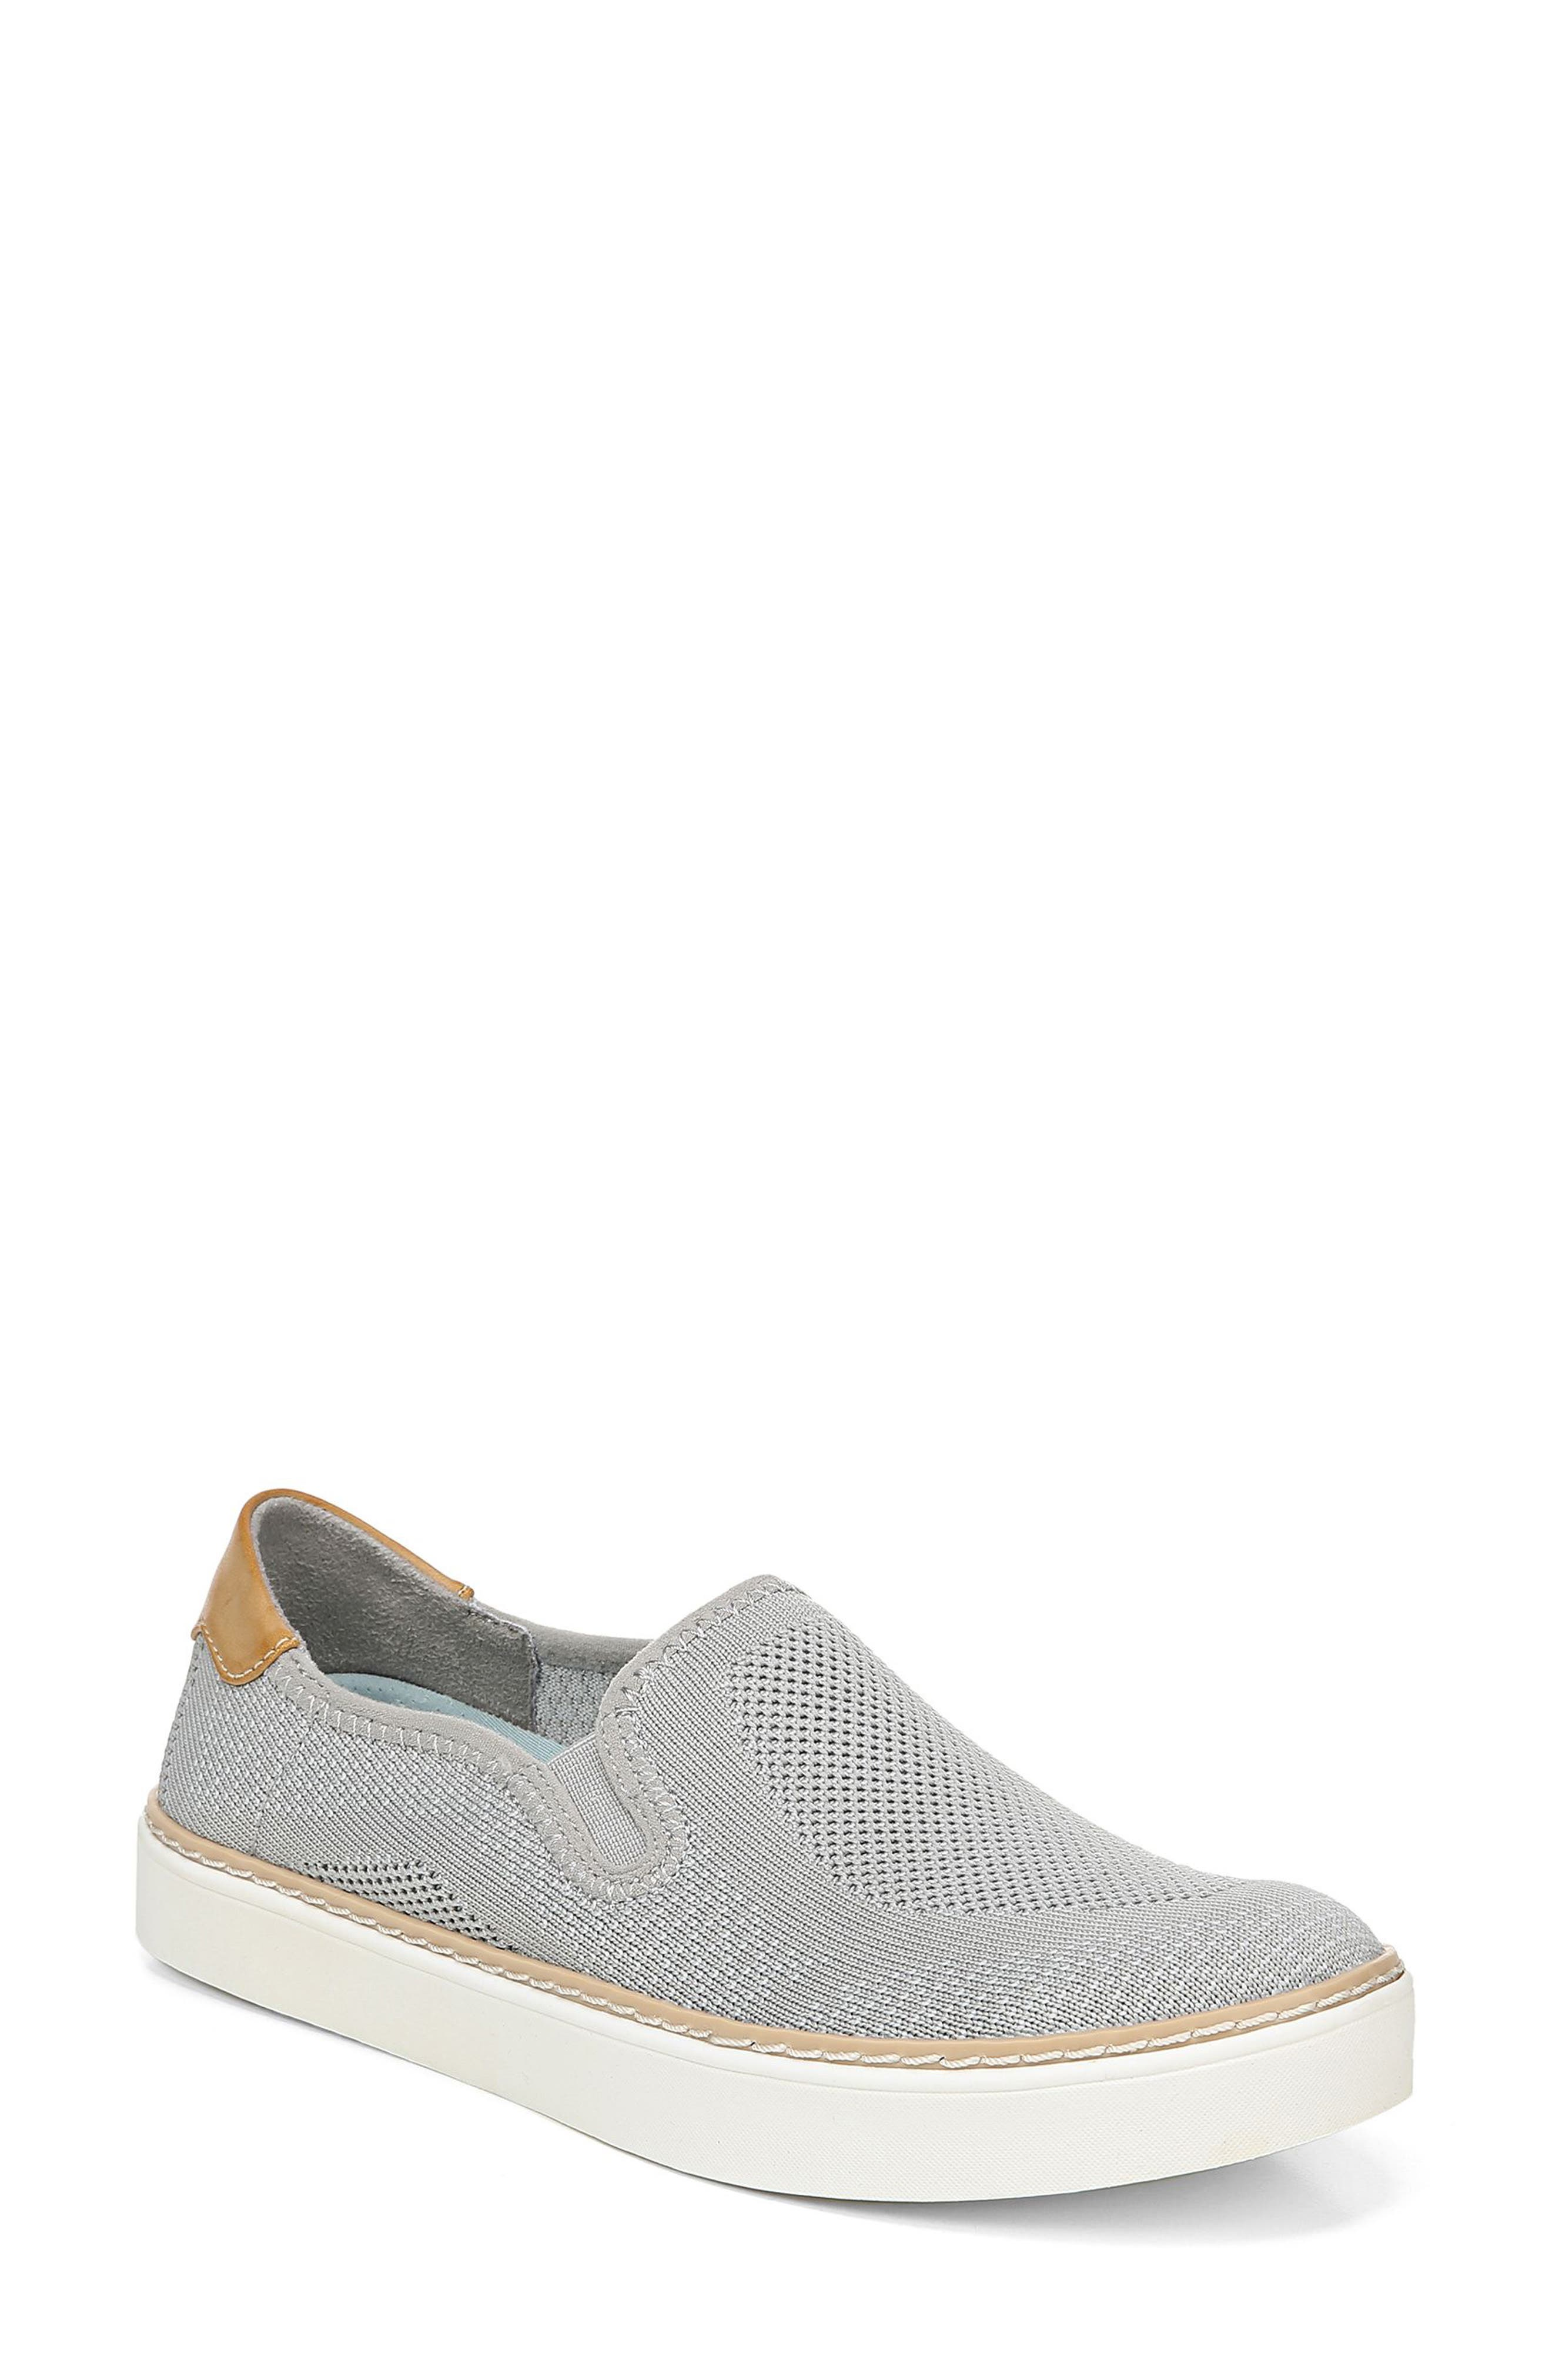 Madi Slip-On Sneaker, Main, color, GREY KNIT FABRIC